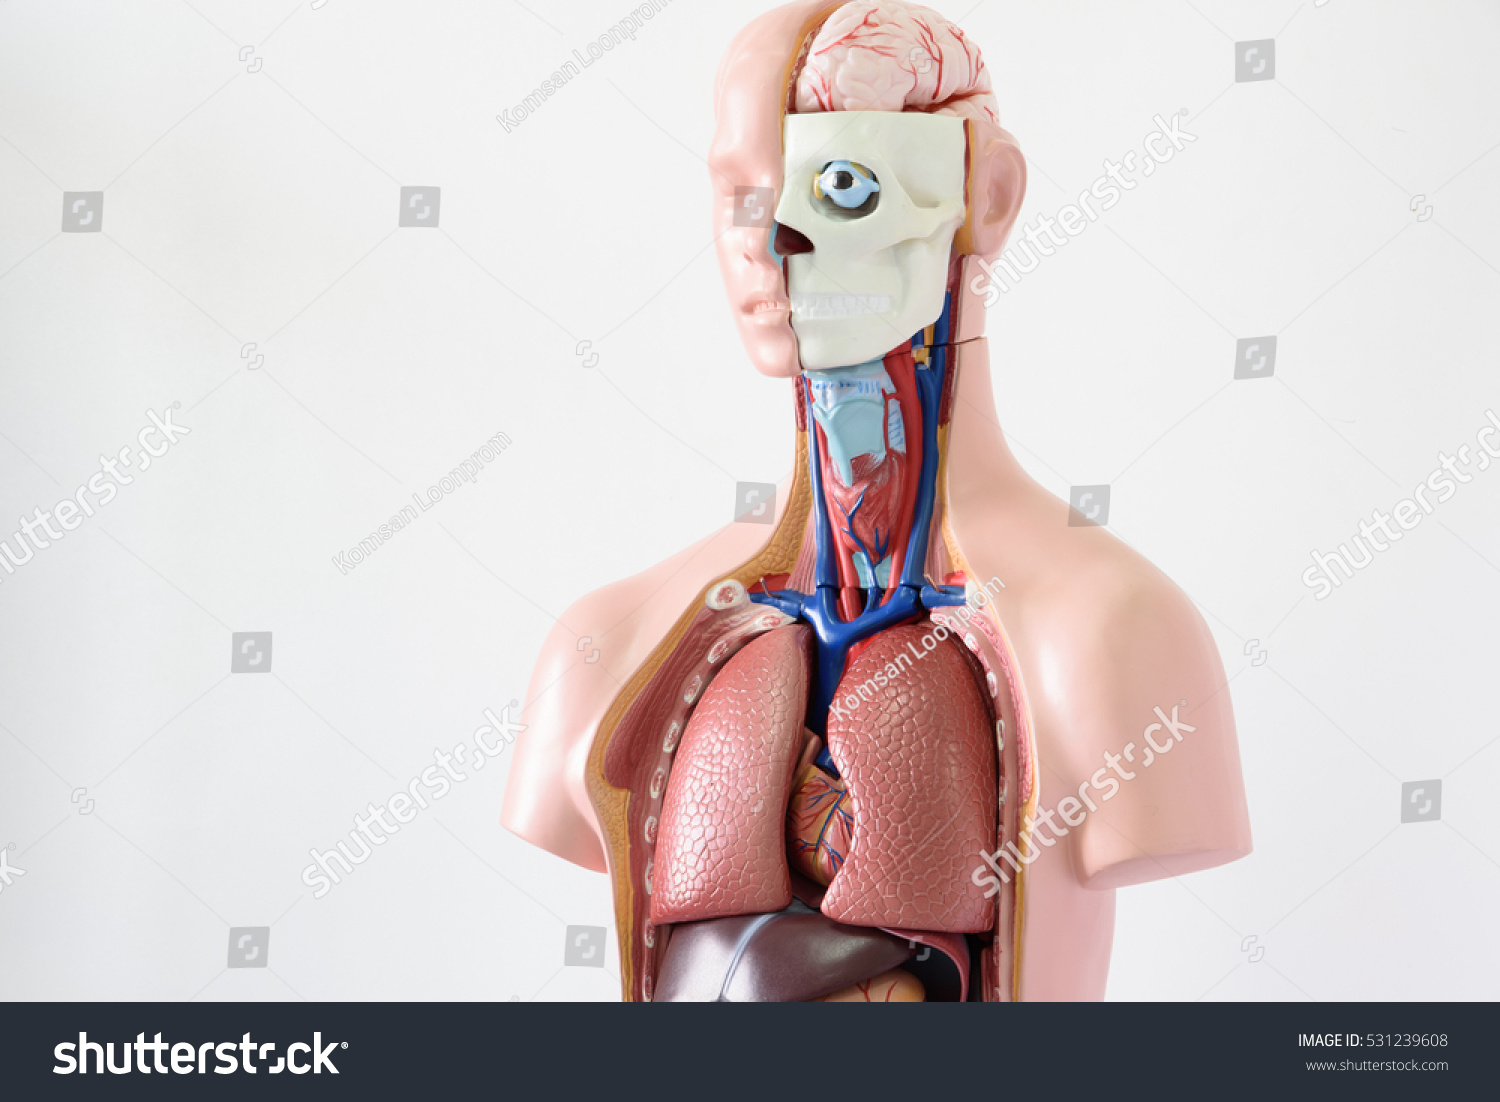 Upper Human Body Anatomy Model On Stock Photo (Edit Now) 531239608 ...